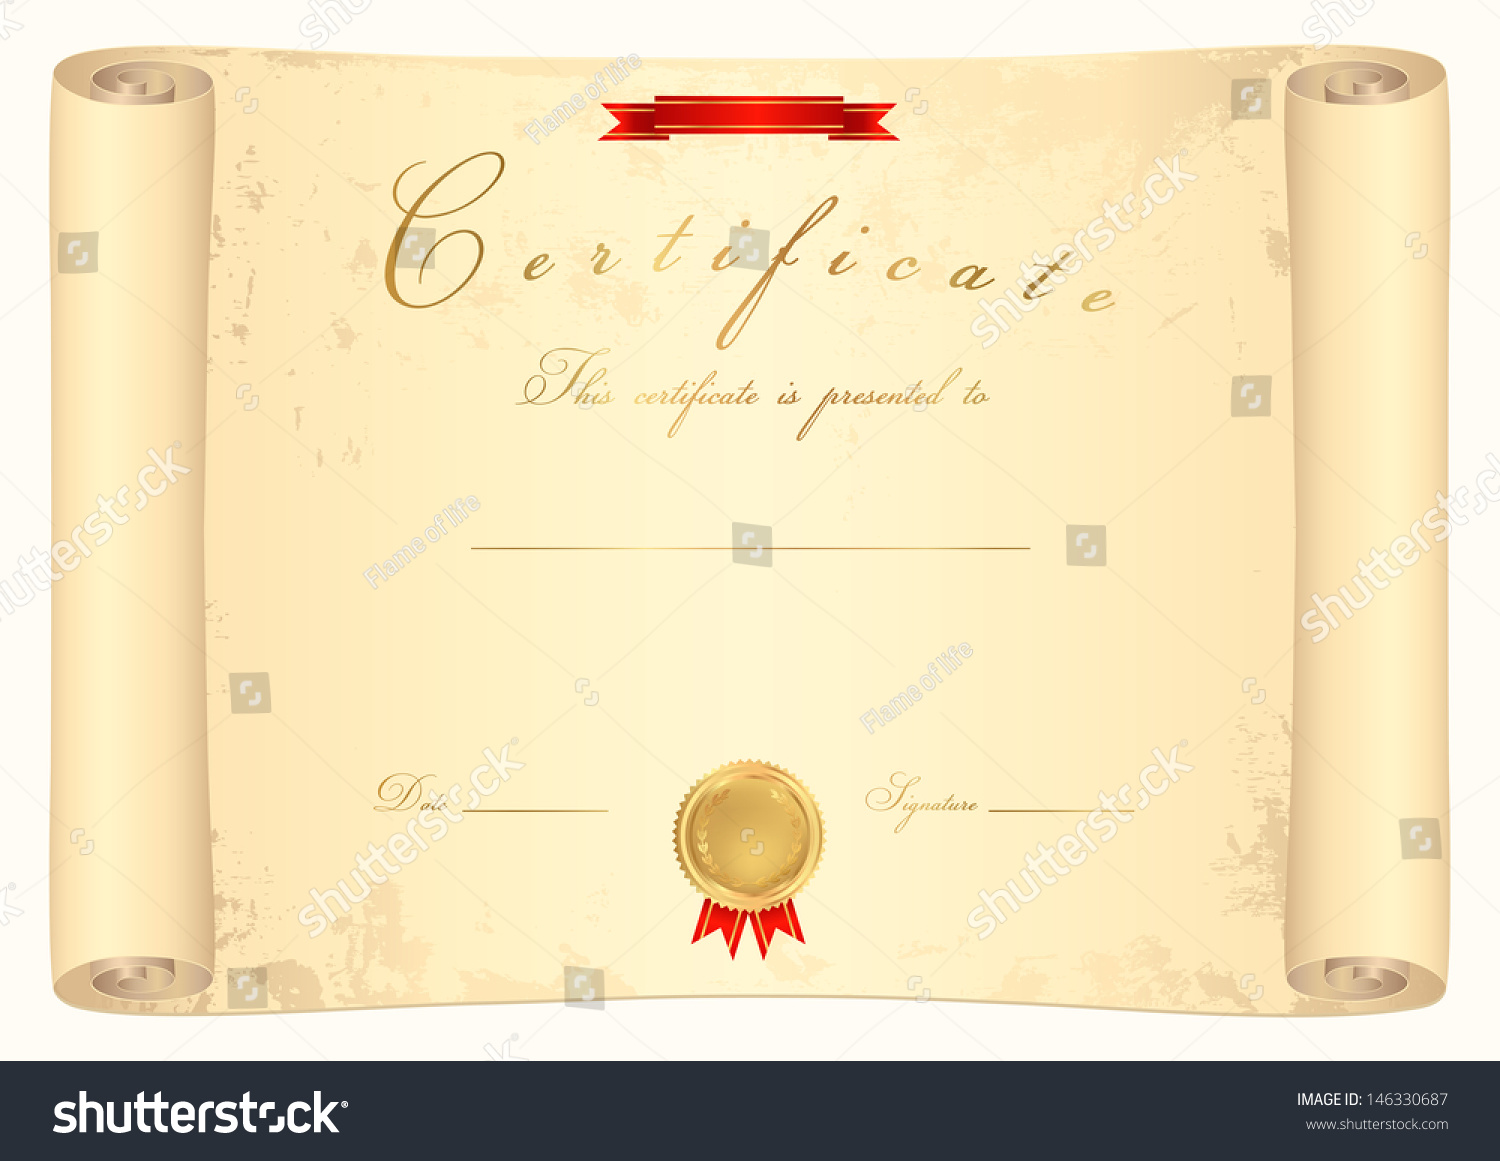 Scroll certificate of completion (template or sample background) with ...